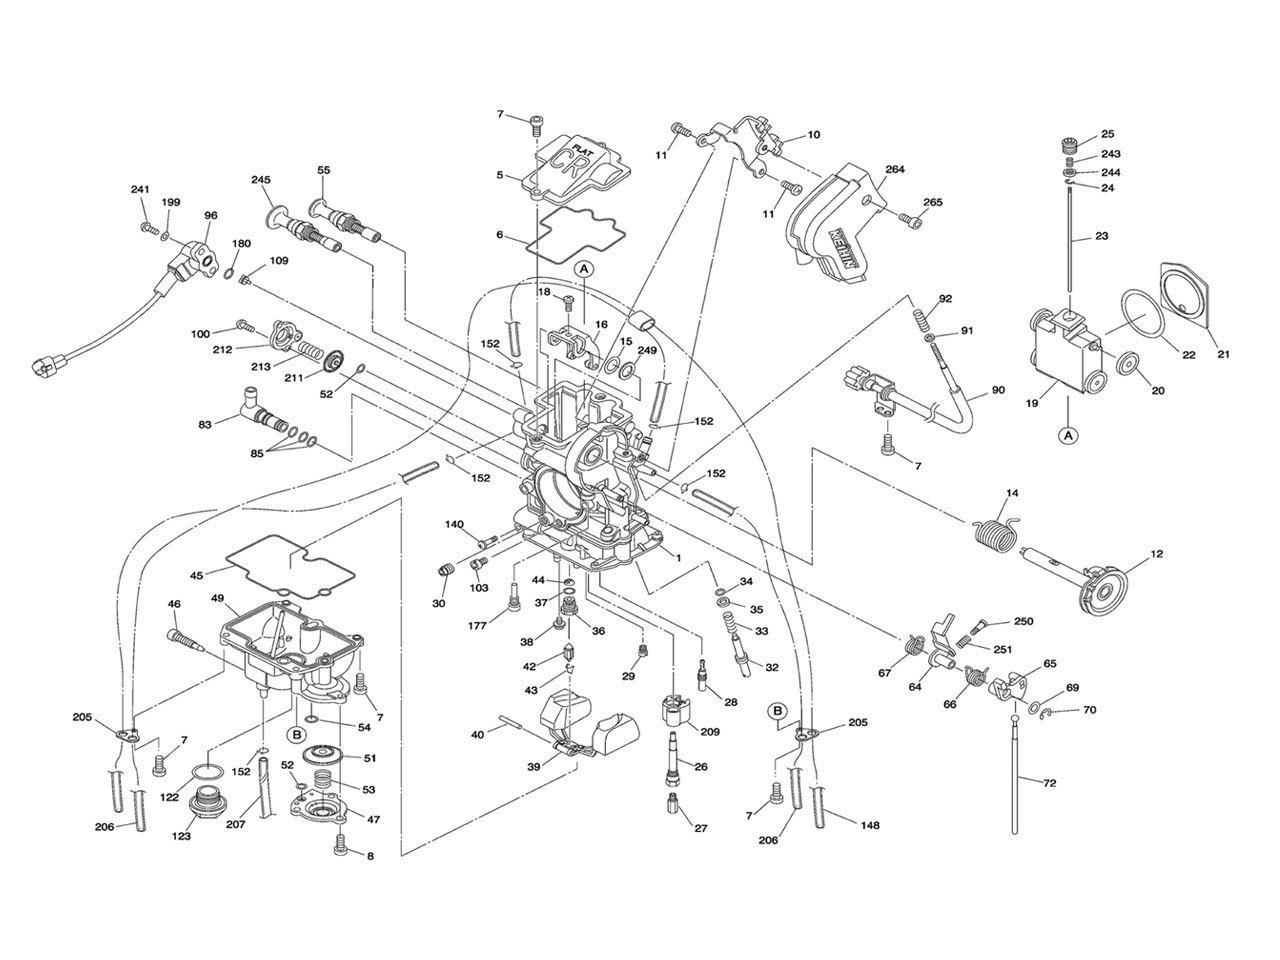 Keihin Carburetor Schematic